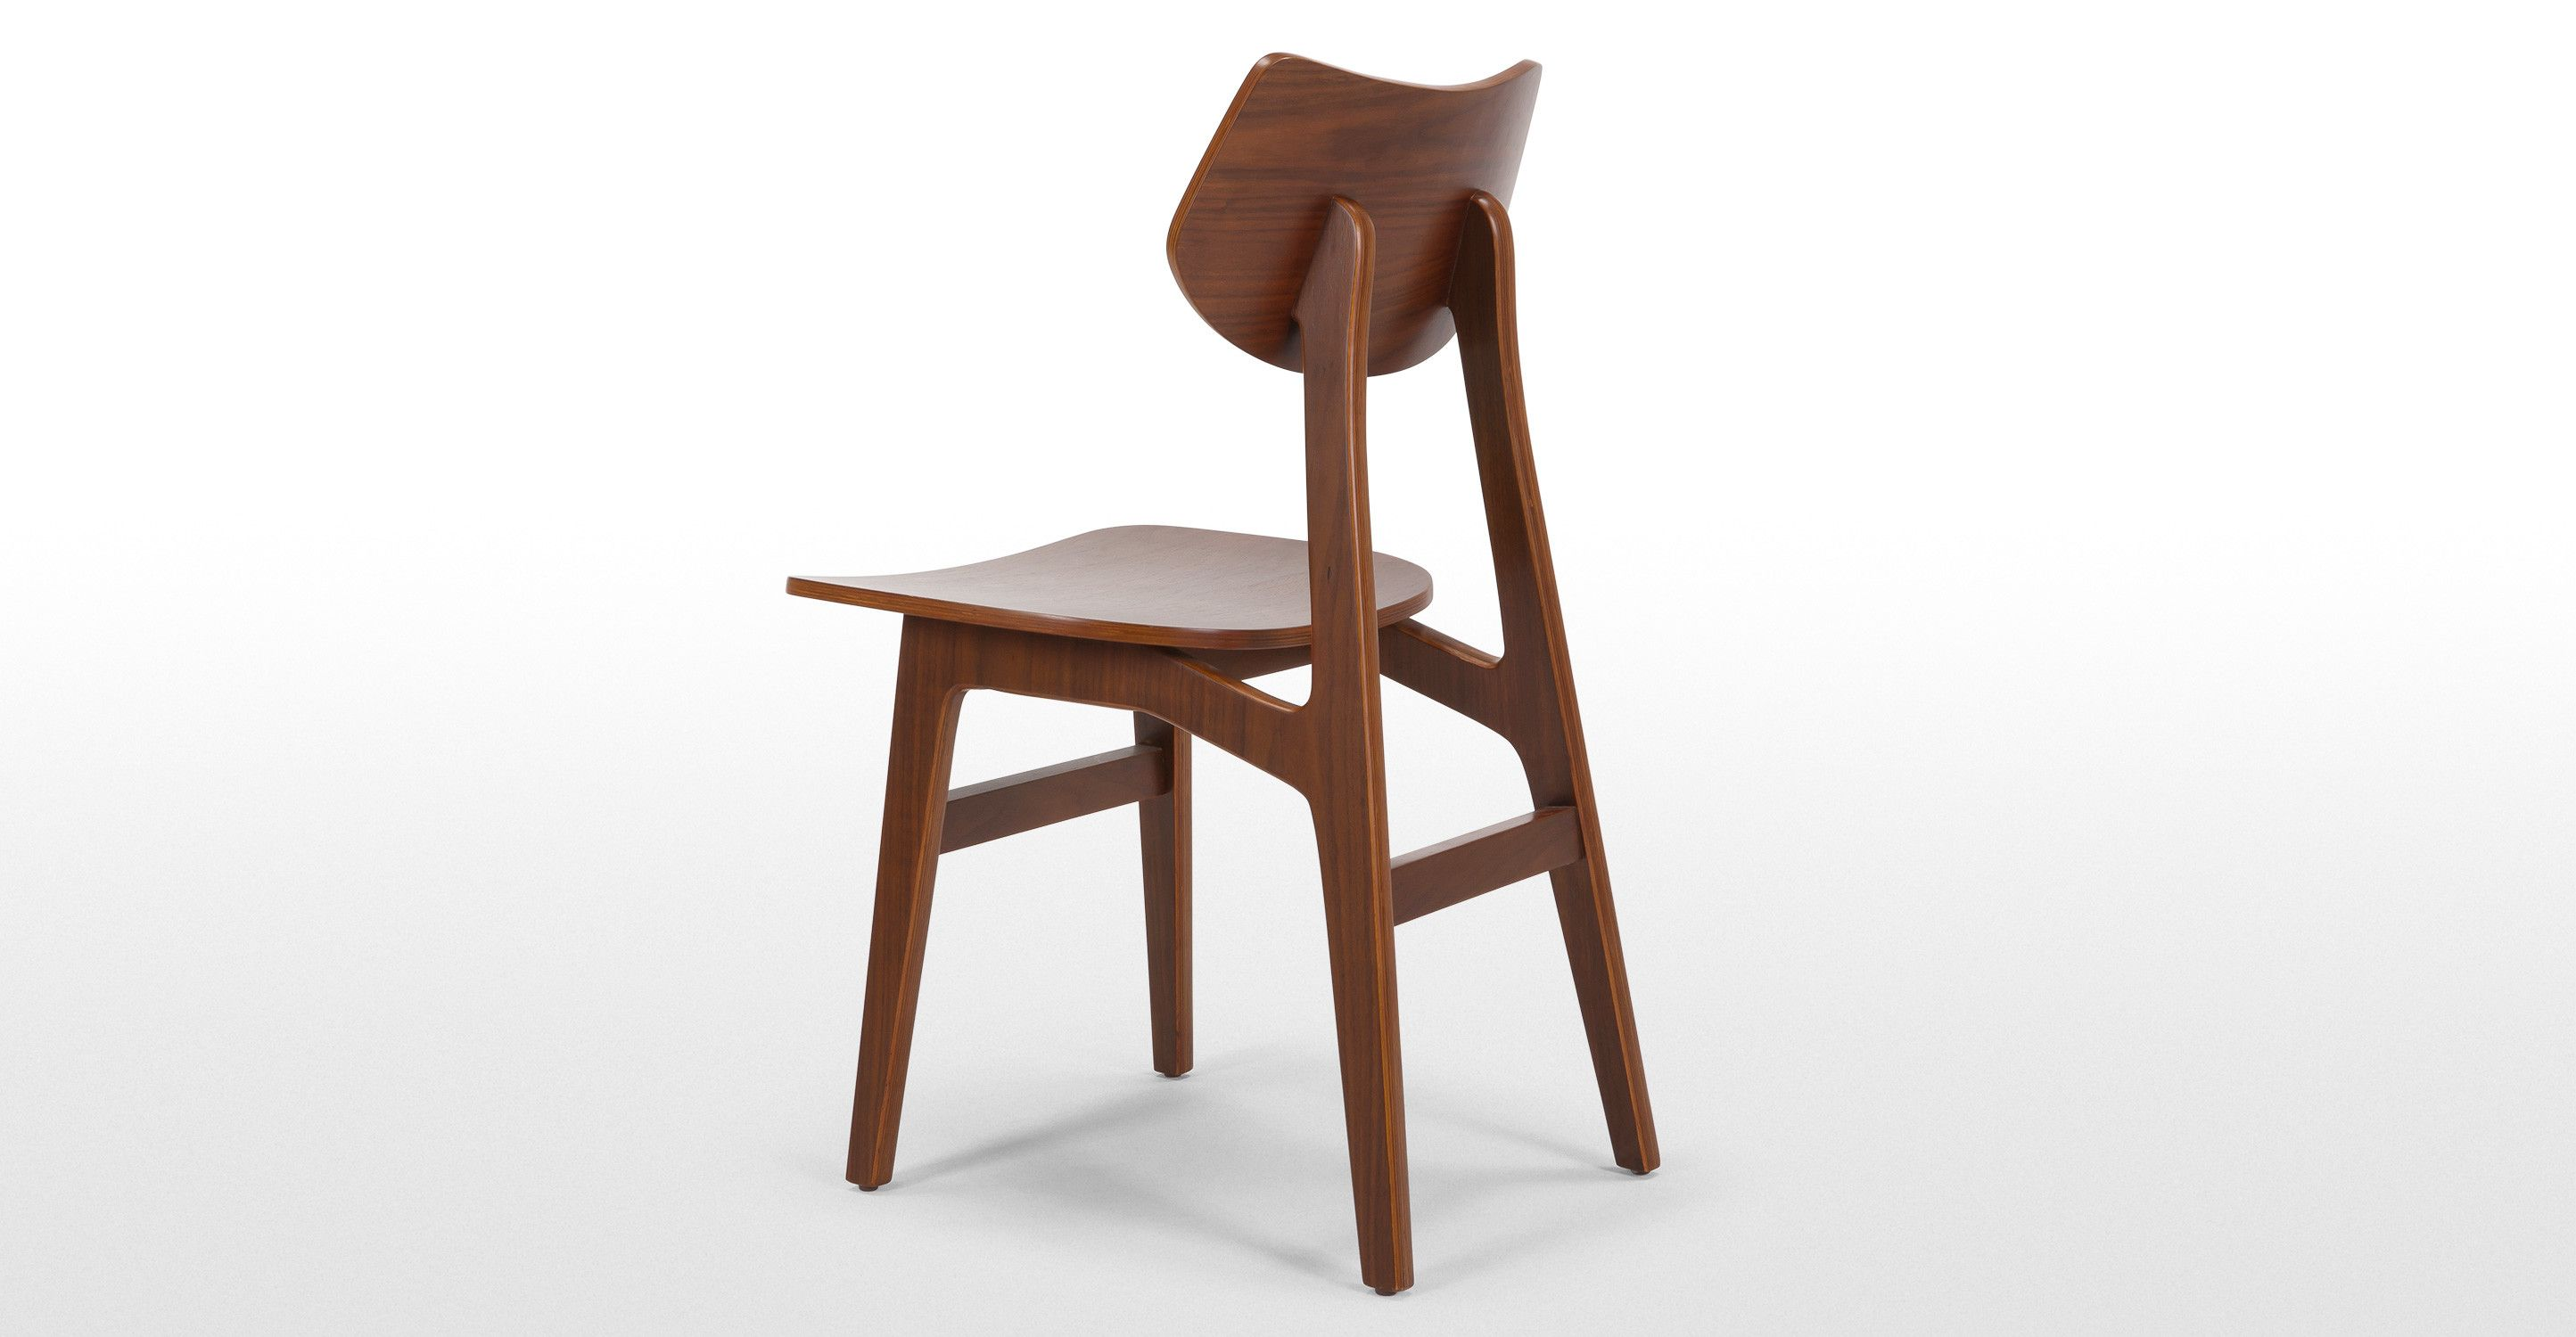 Made 2 X Dining Chairs Natural Walnut Wood Express Delivery Jacob